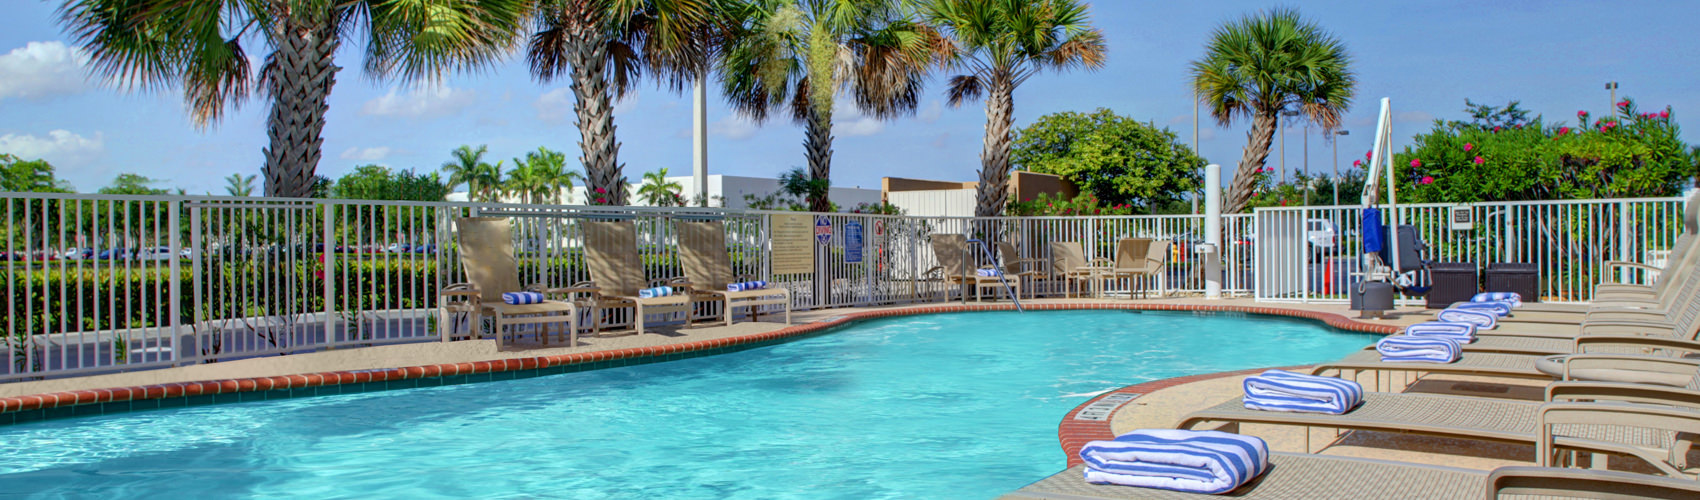 Hampton Inn & Suites Ft. Lauderdale West - Sawgrass / Tamarac, FL